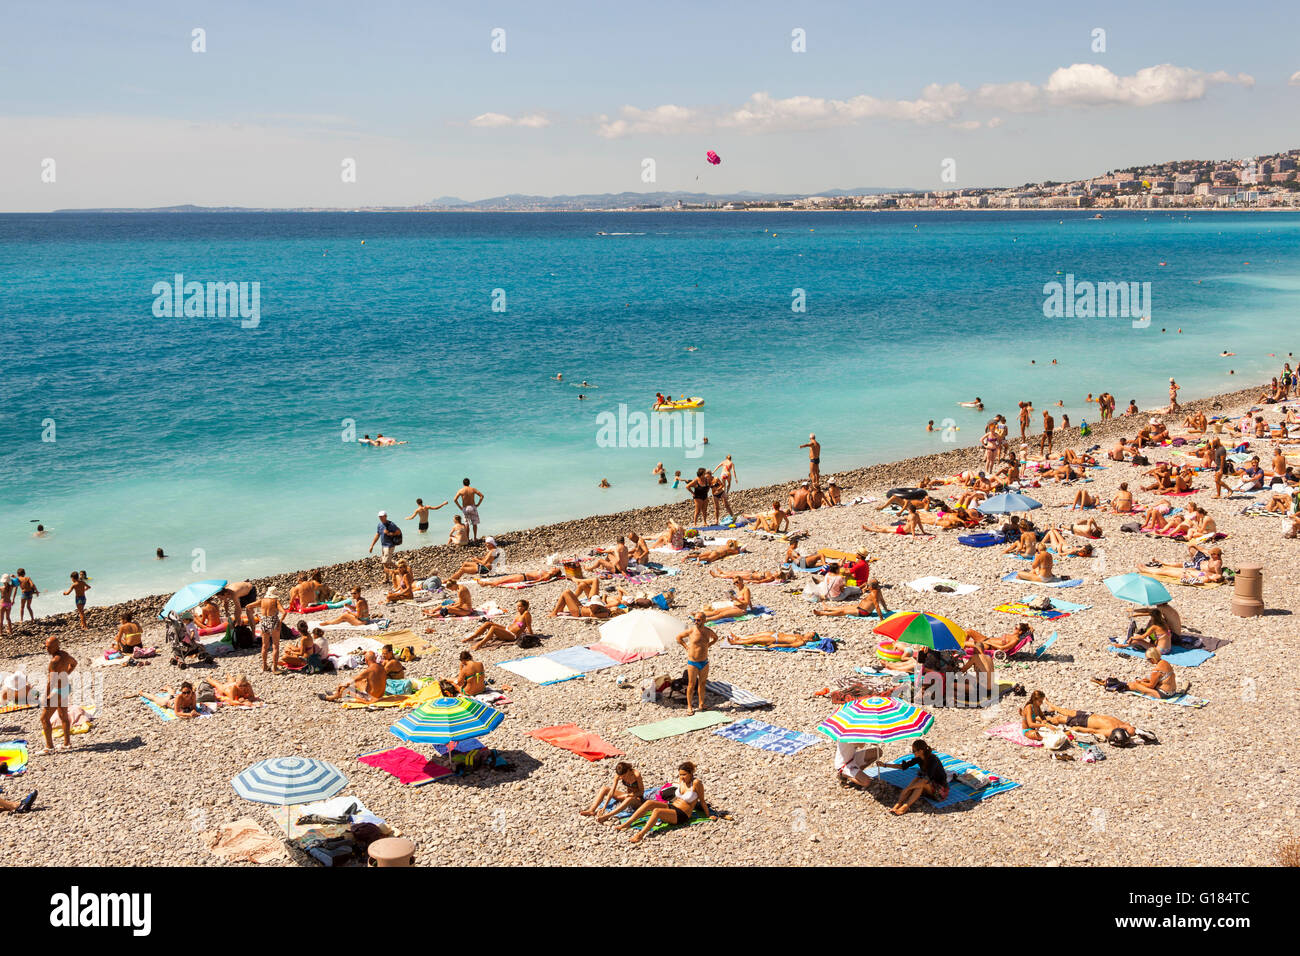 Baie Des Anges and tourists sunbathing on beach, Nice, Cote D'Azur, France Stock Photo